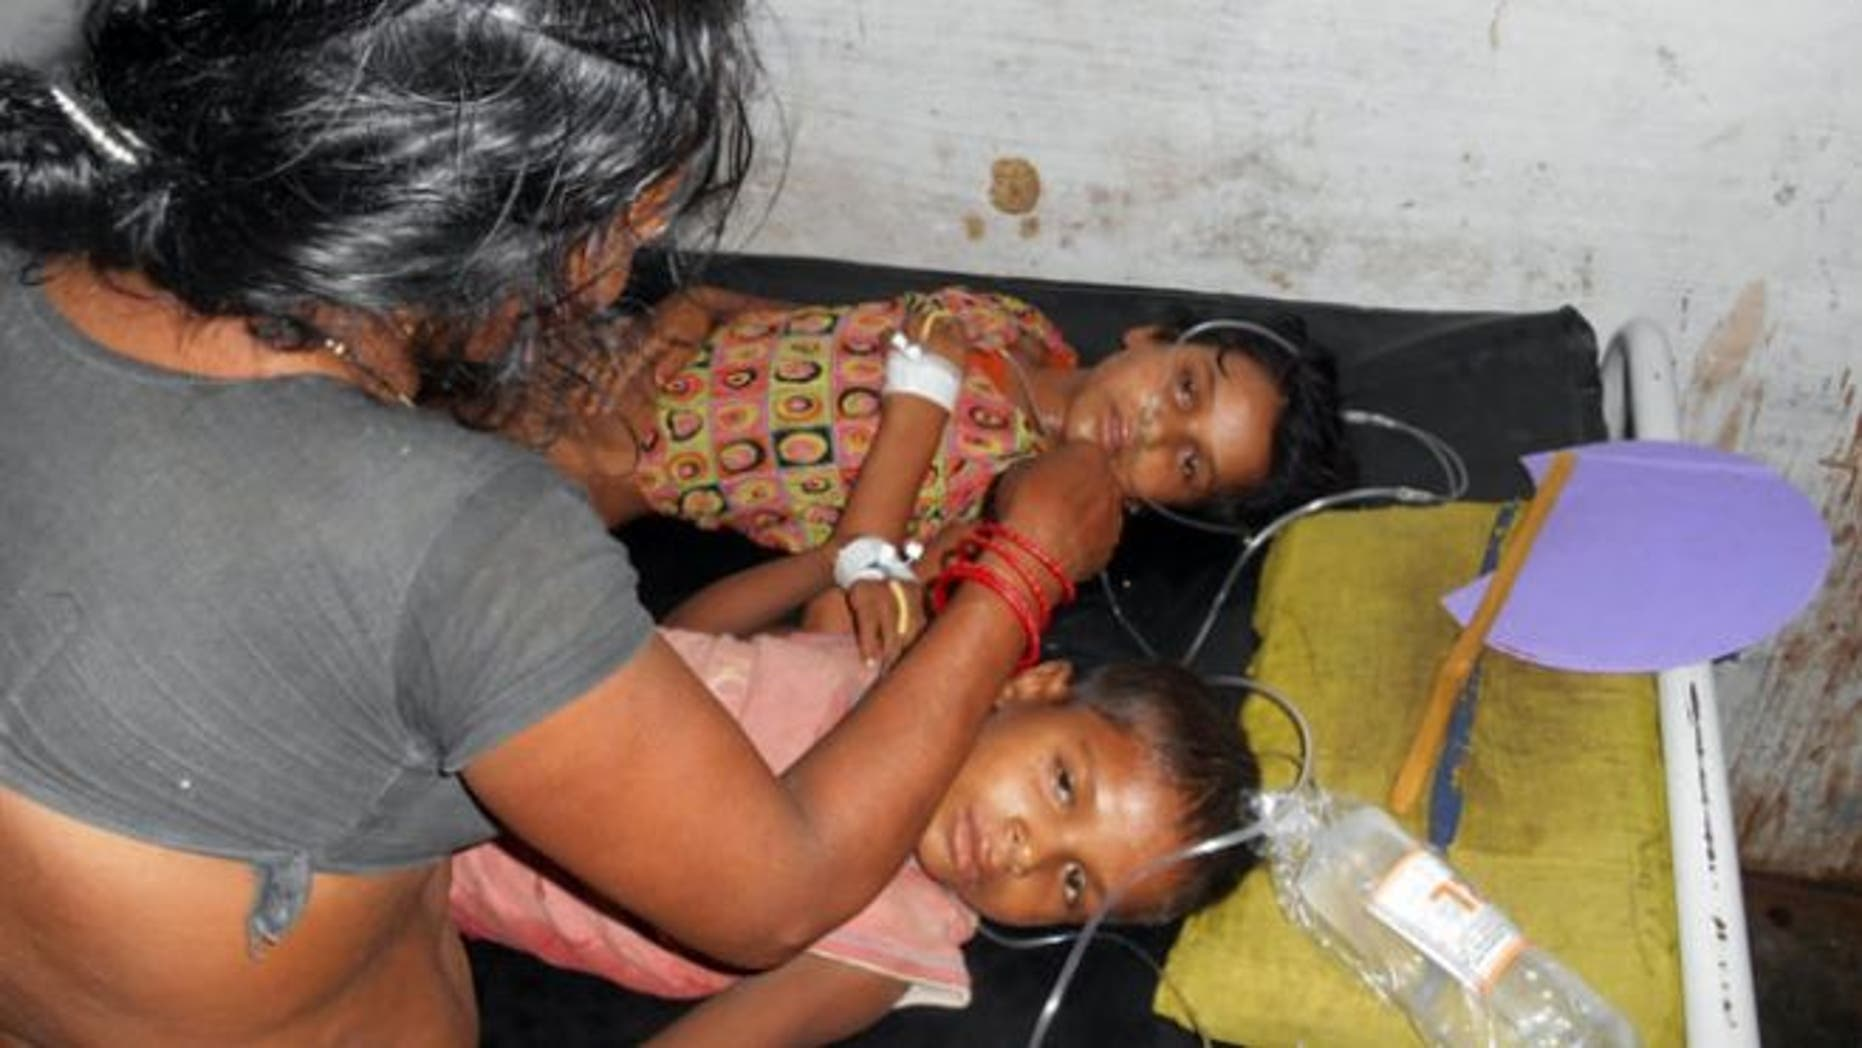 July 16, 2013: Schoolchildren receive treatment at a hospital after falling ill soon after eating a free meal at a primary school in Chhapra district, in the eastern Indian state of Bihar.